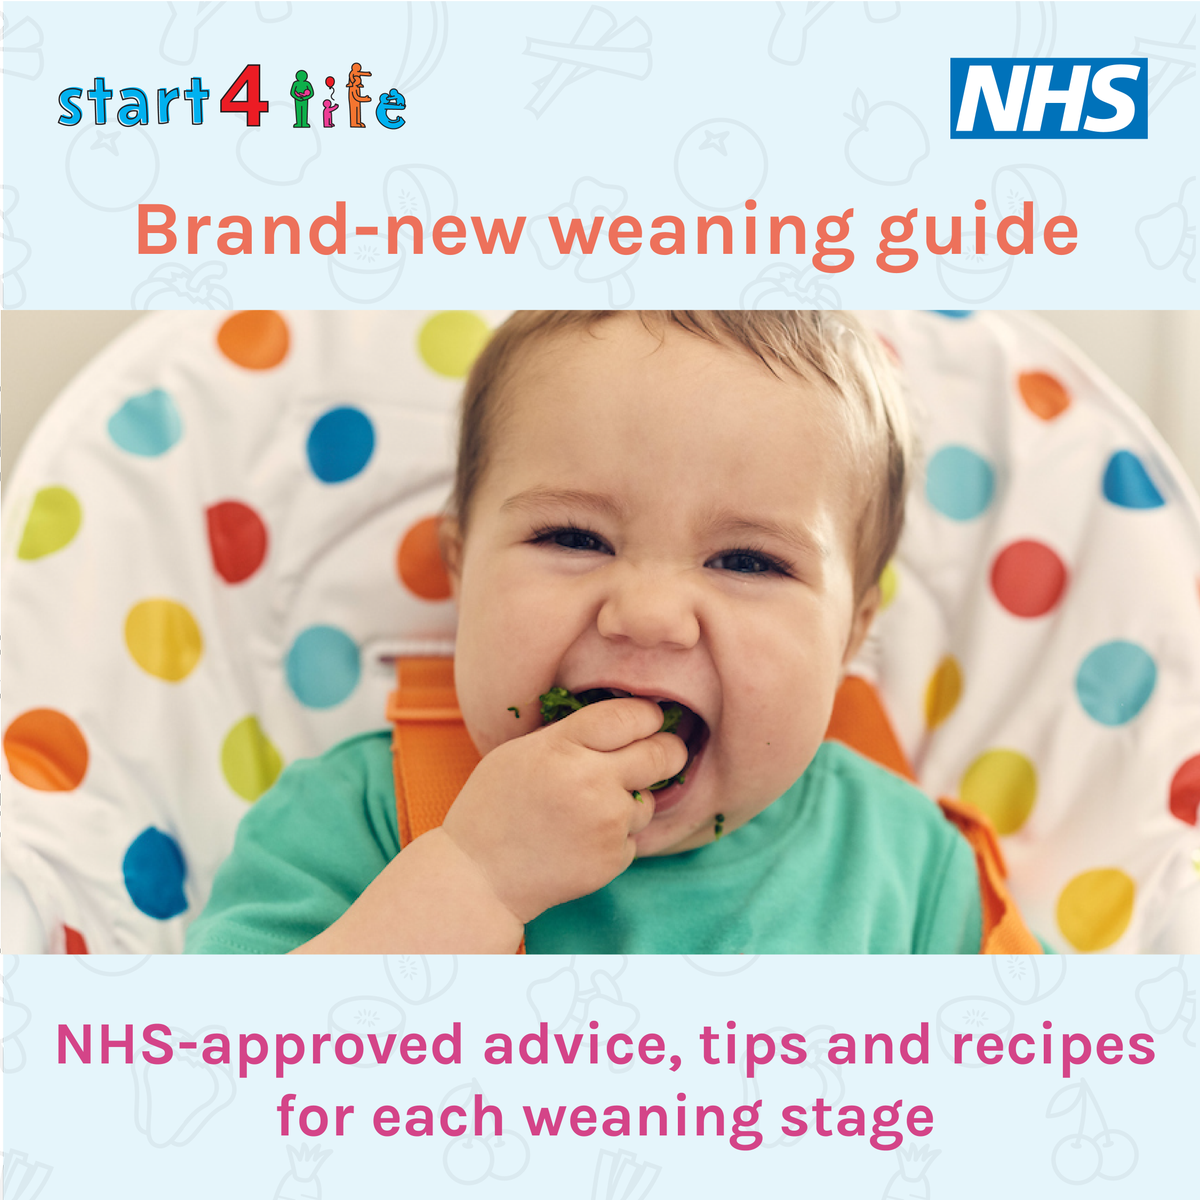 Get Nhs Approved Advice And Tips From Start4life Nhs_parents Https Www Nhs Uk Start4life Weaning Pic Twitter Com Ahaocqjob7